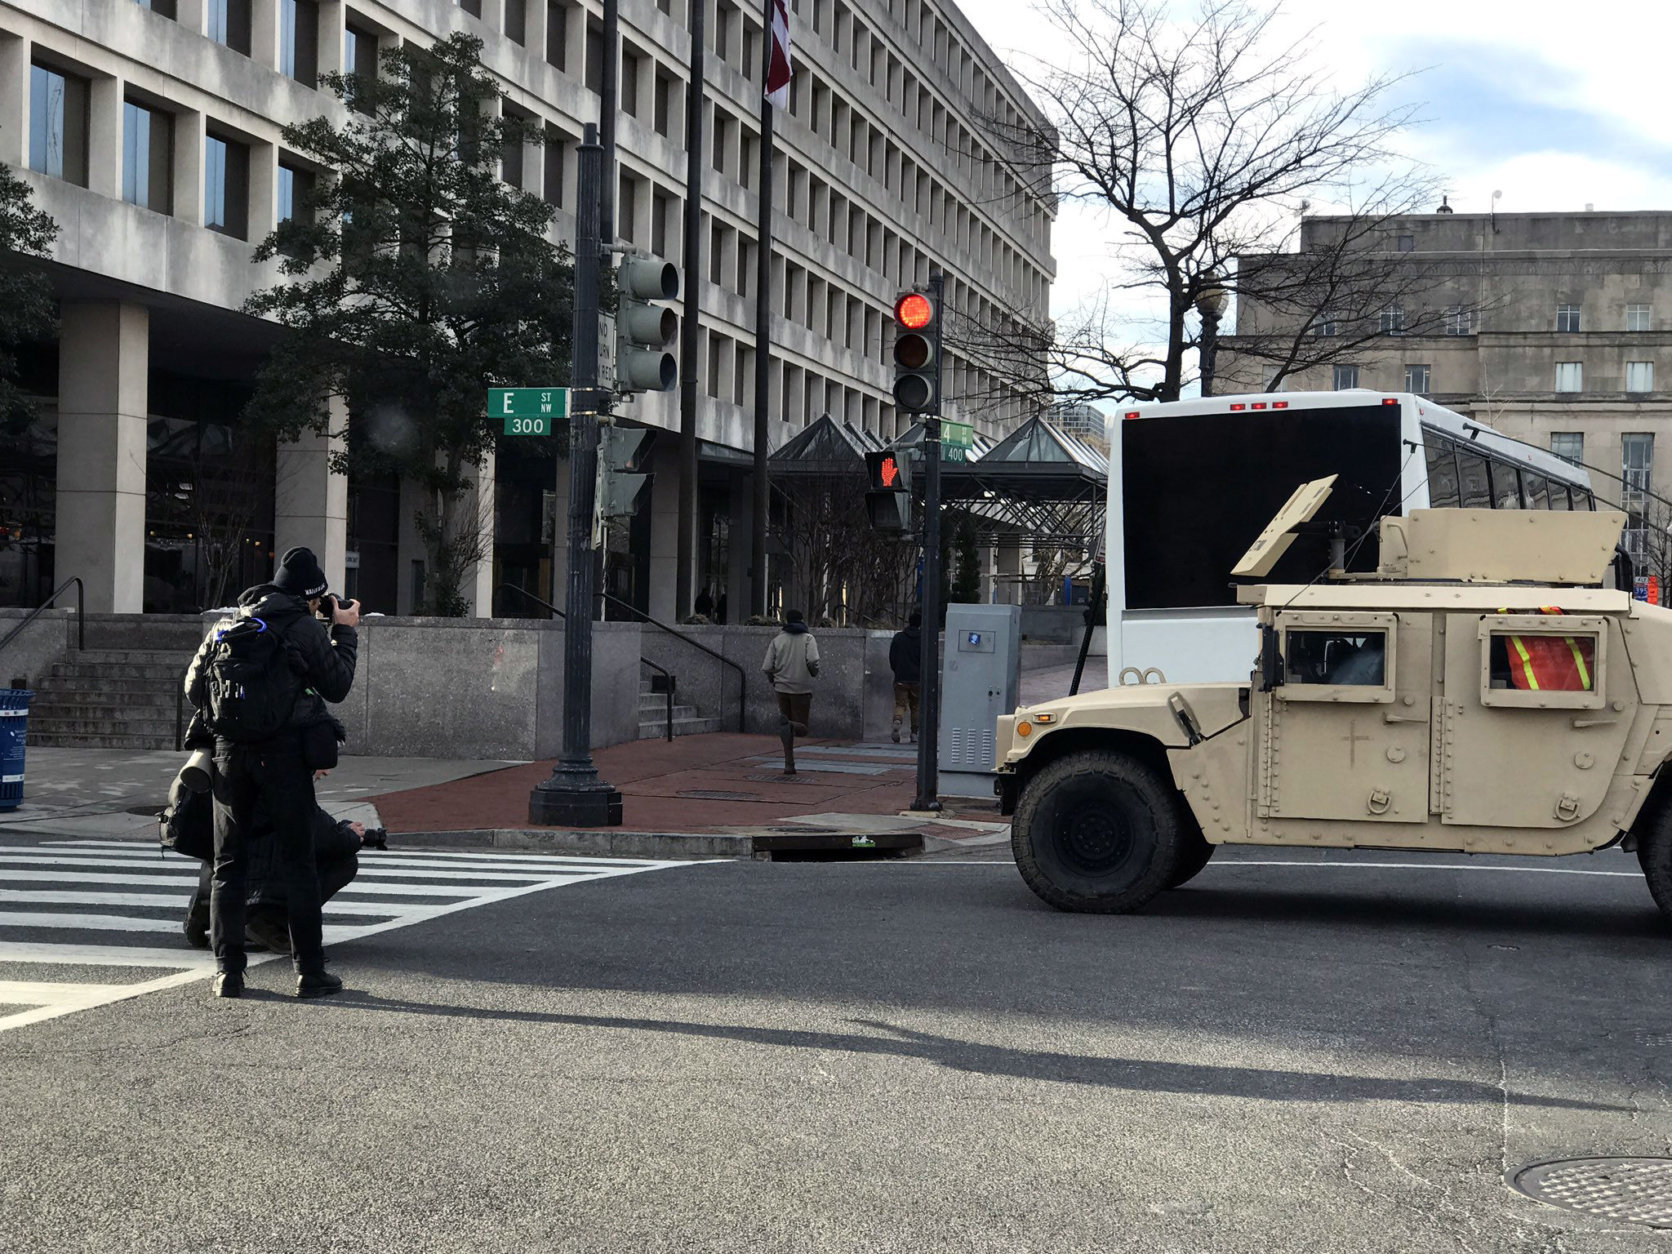 Security and closures in place at the march. (WTOP/Steve Dresner)